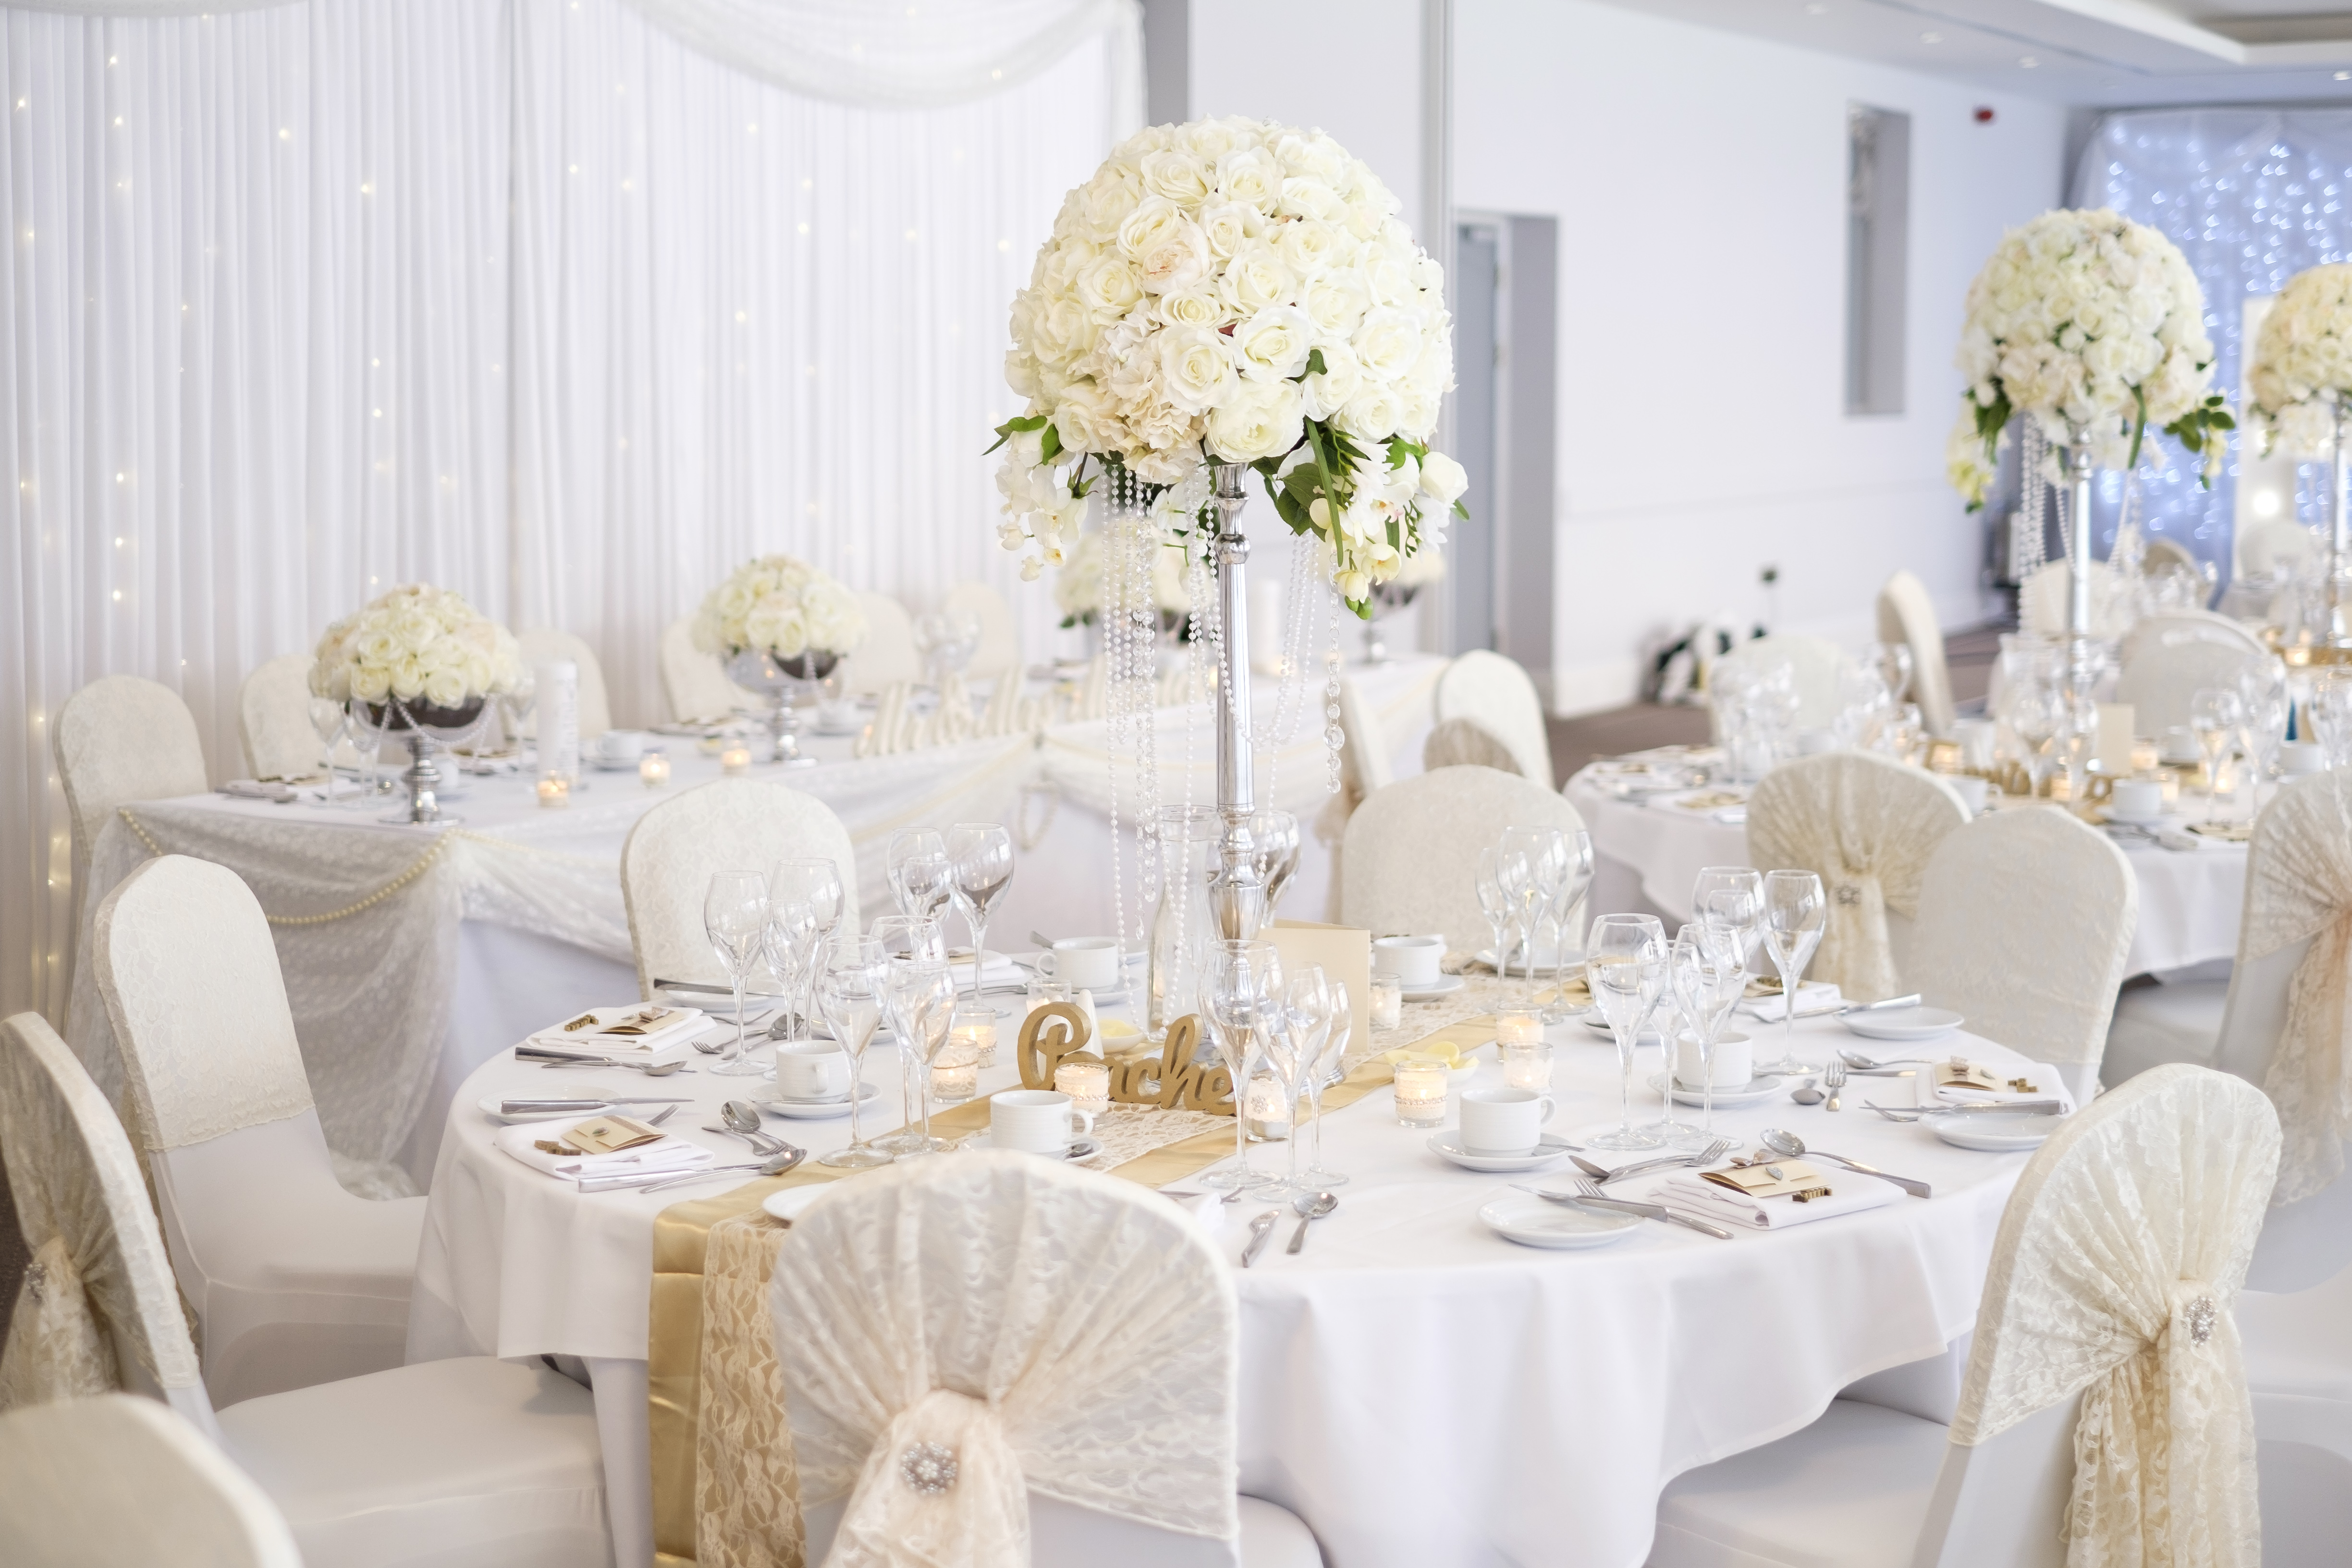 Downtons, Abbeys and chair covers